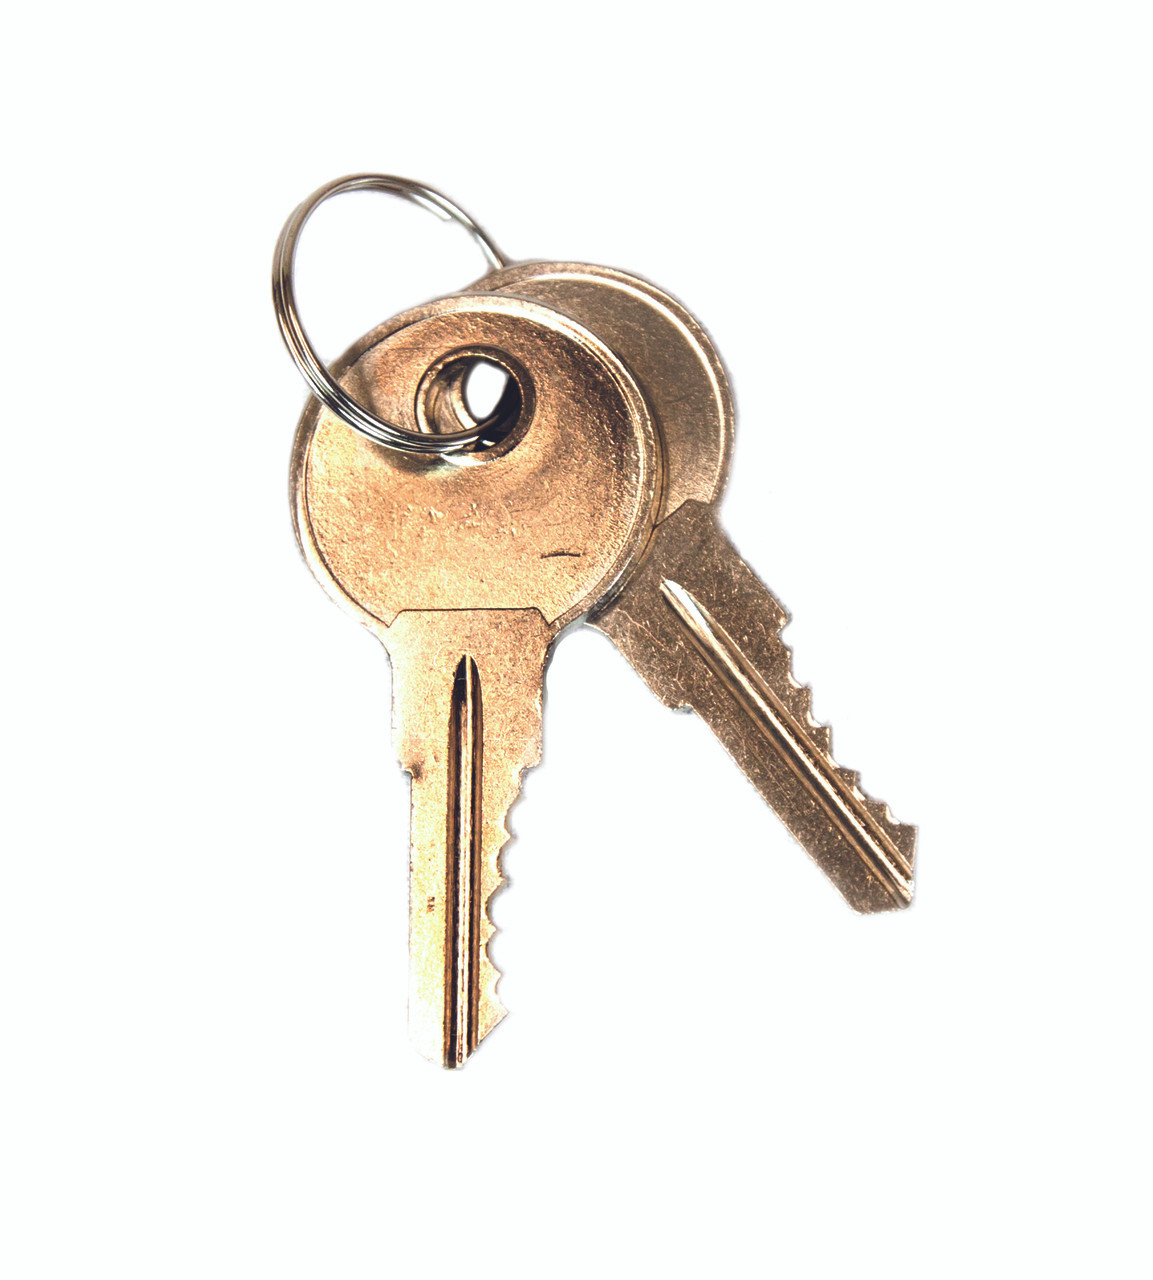 Awe Inspiring Eagle C83N Replacement Keys For Safety Cabinet Paddle Handle Set Of 2 For Lock No Ch545 Download Free Architecture Designs Grimeyleaguecom